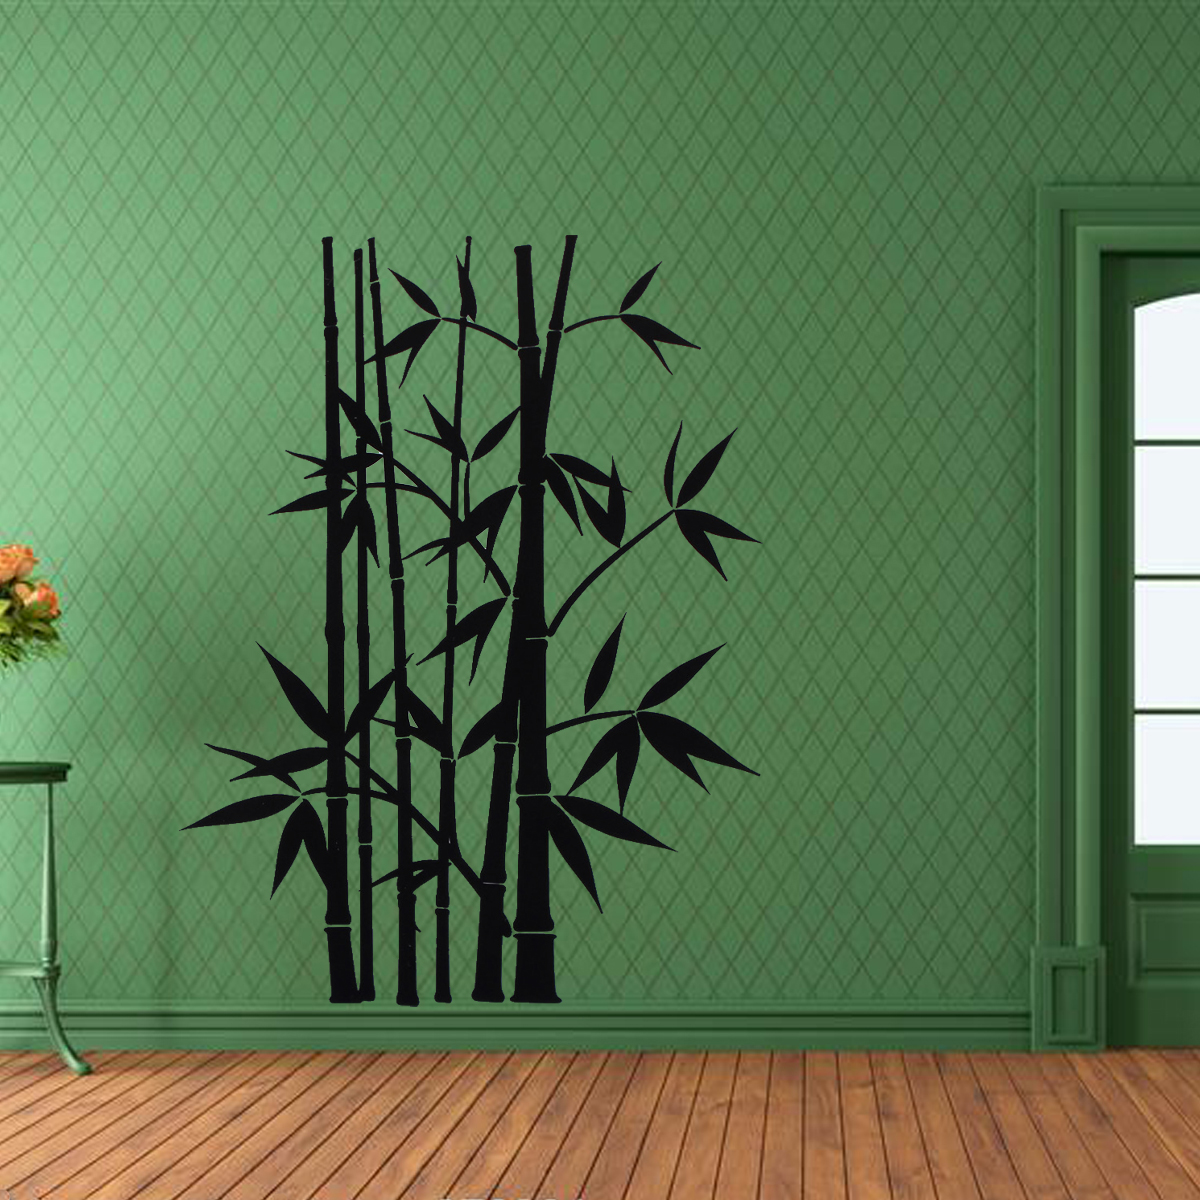 Wall stickers bamboo choice image home wall decoration ideas removable wall sticker home decor art decoration mural decal vinyl removable wall sticker home decor art amipublicfo Images